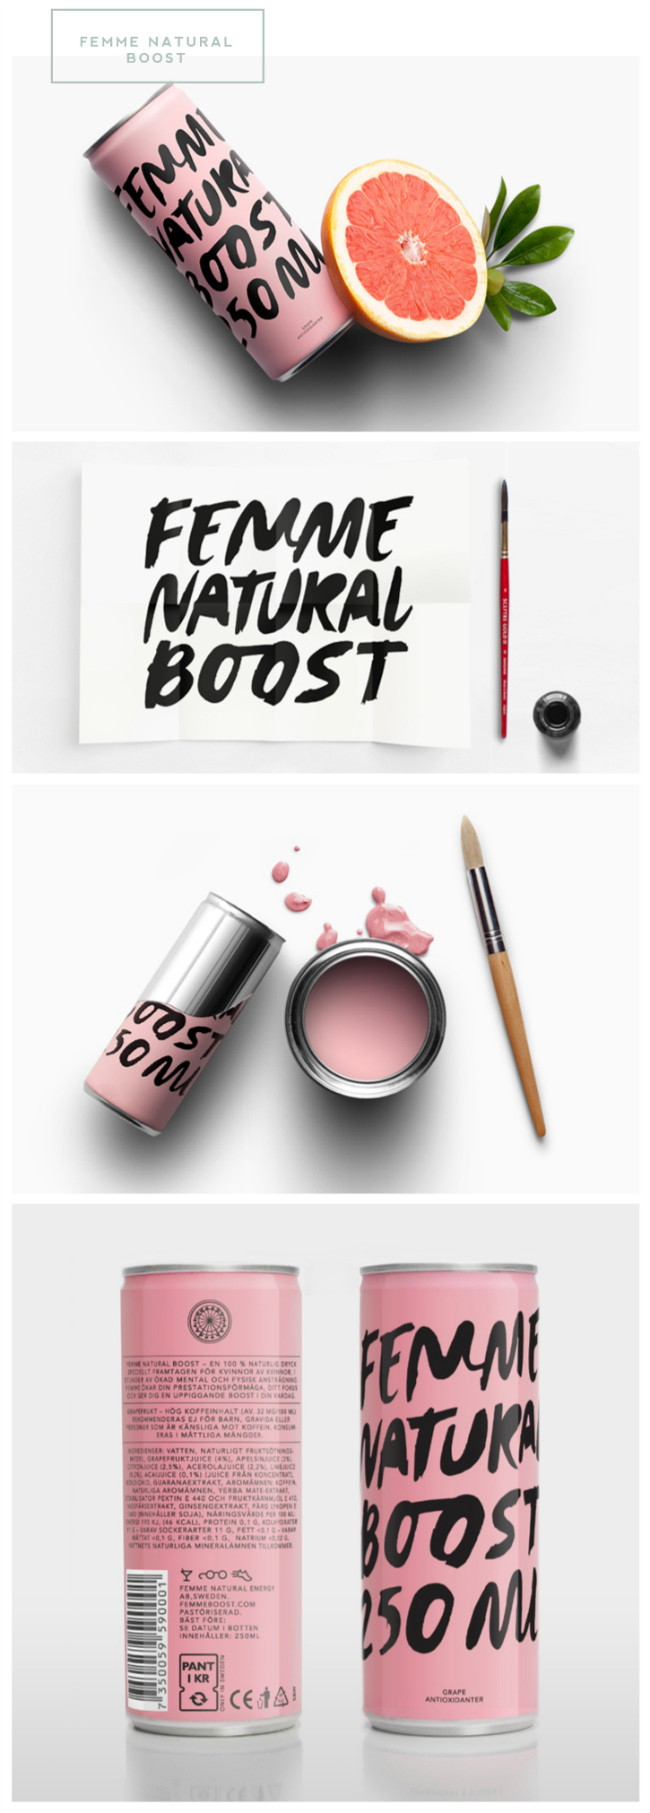 Femme Natural Boost packaging